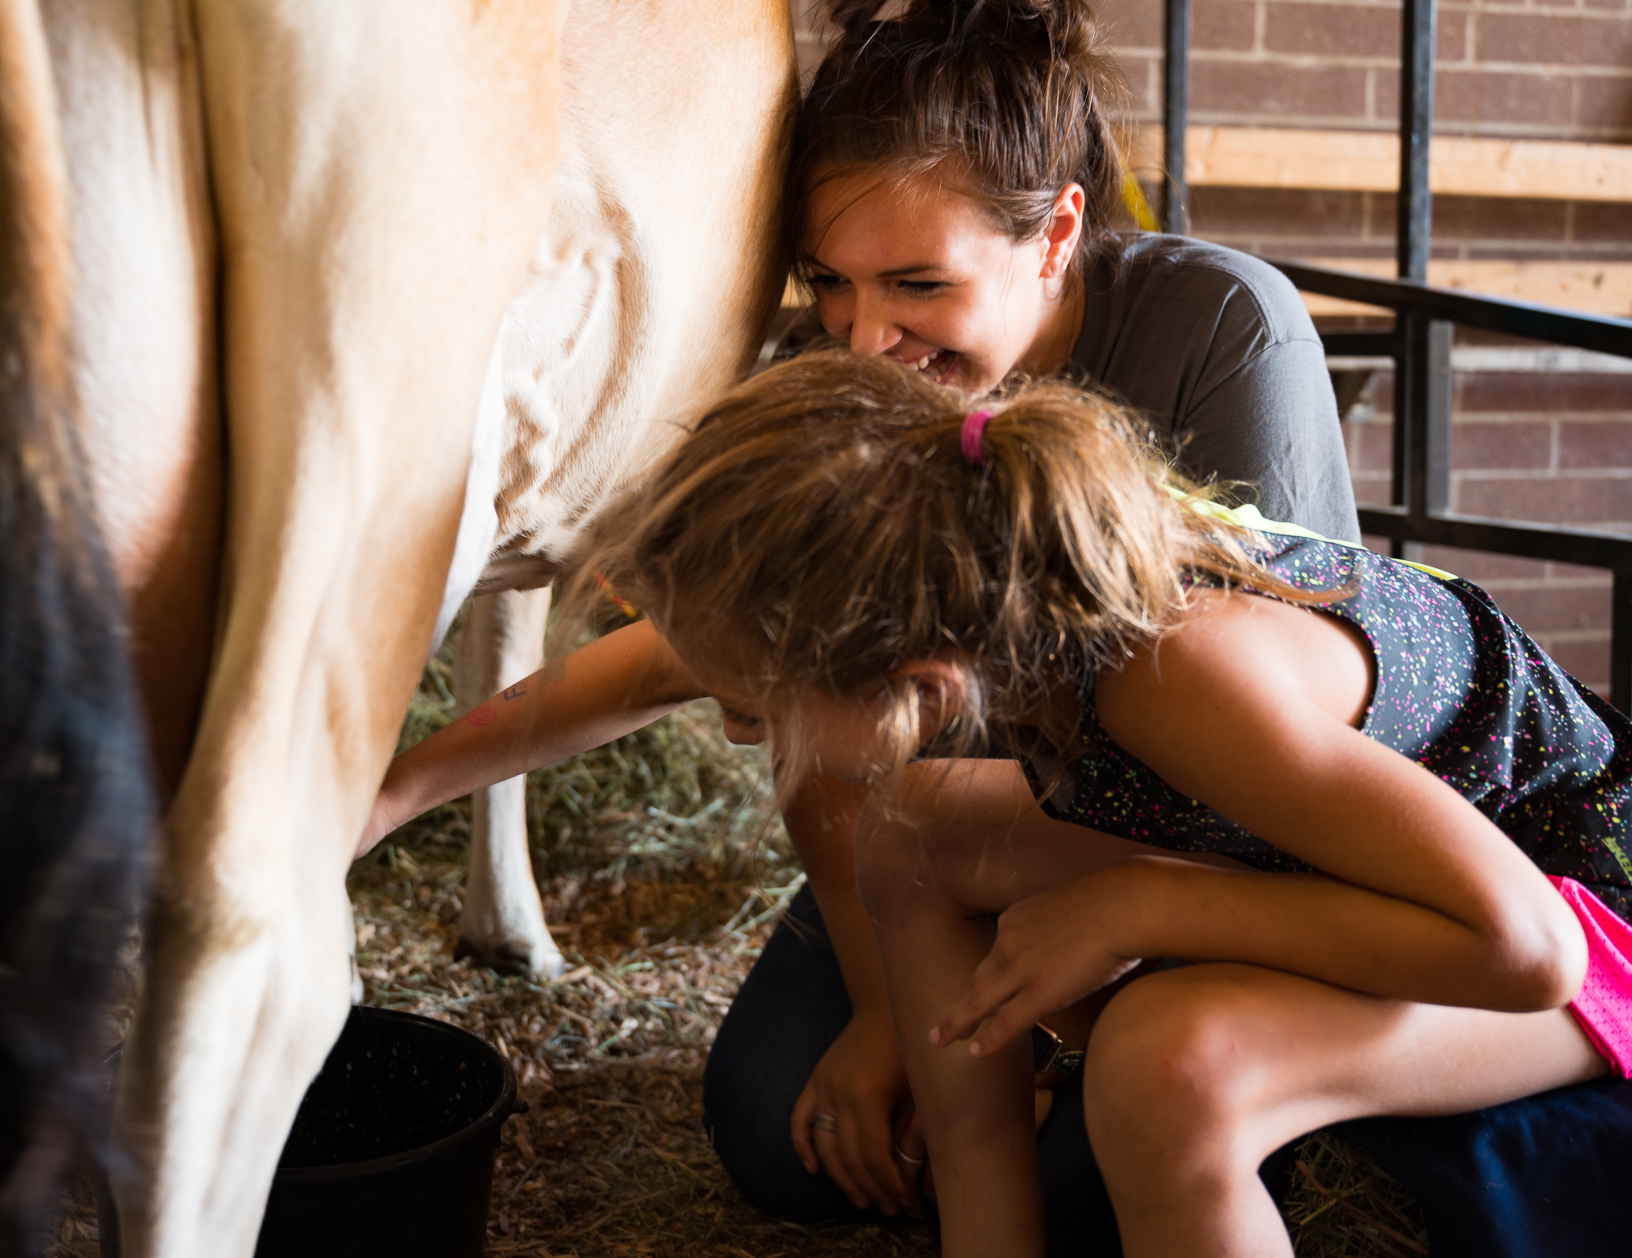 Josie Young, an Iowa State University Dairy Science Club student, smiles as Aleeri learns how to milk a cow at the Iowa State Fair. Photo credit: Joseph L. Murphy/Iowa Soybean Association